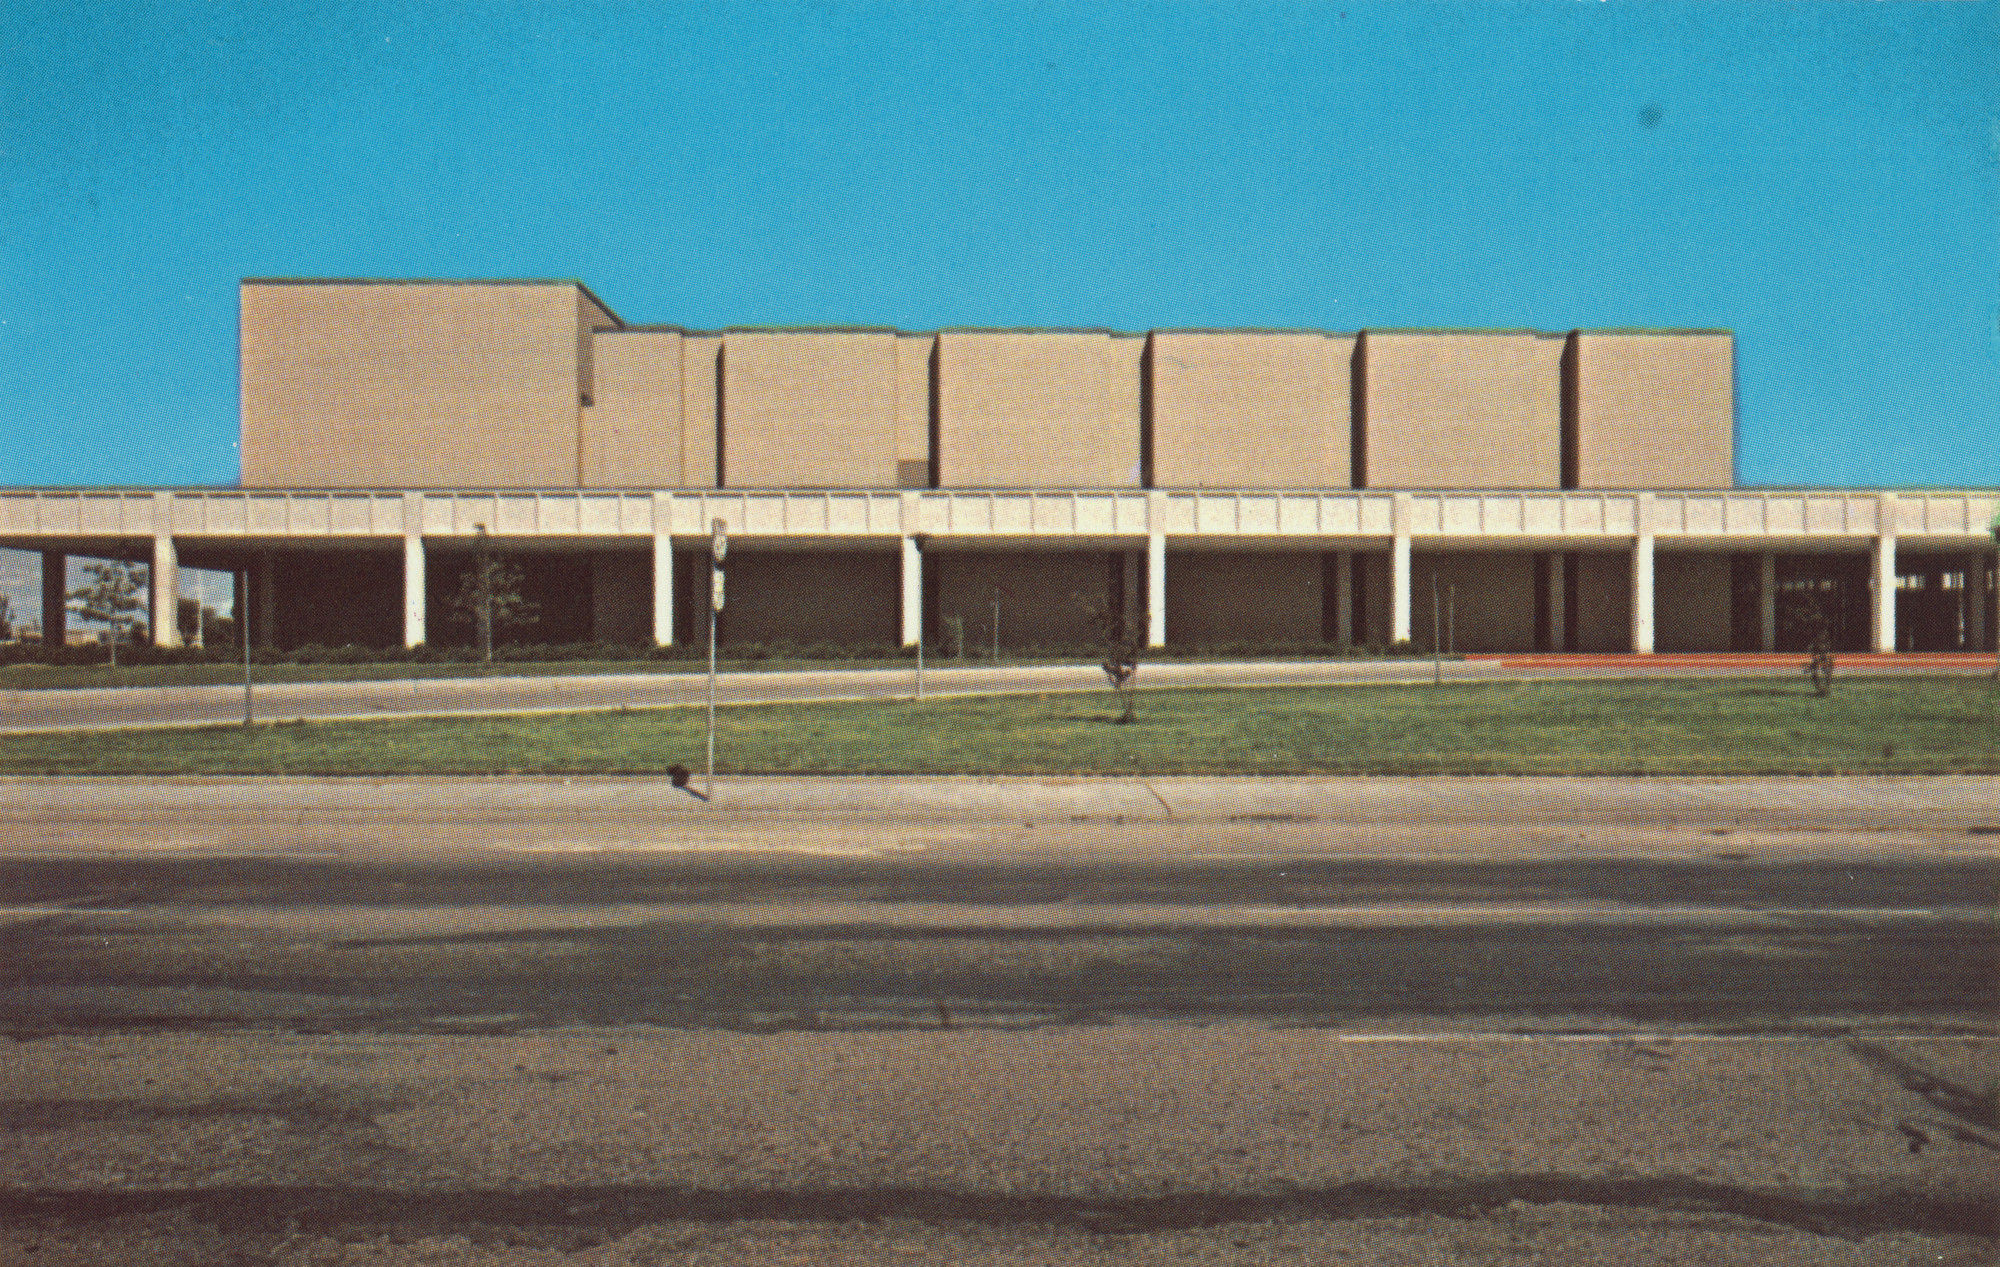 Stephen Shore. Civic Center, 3rd & Buchanan. 1971